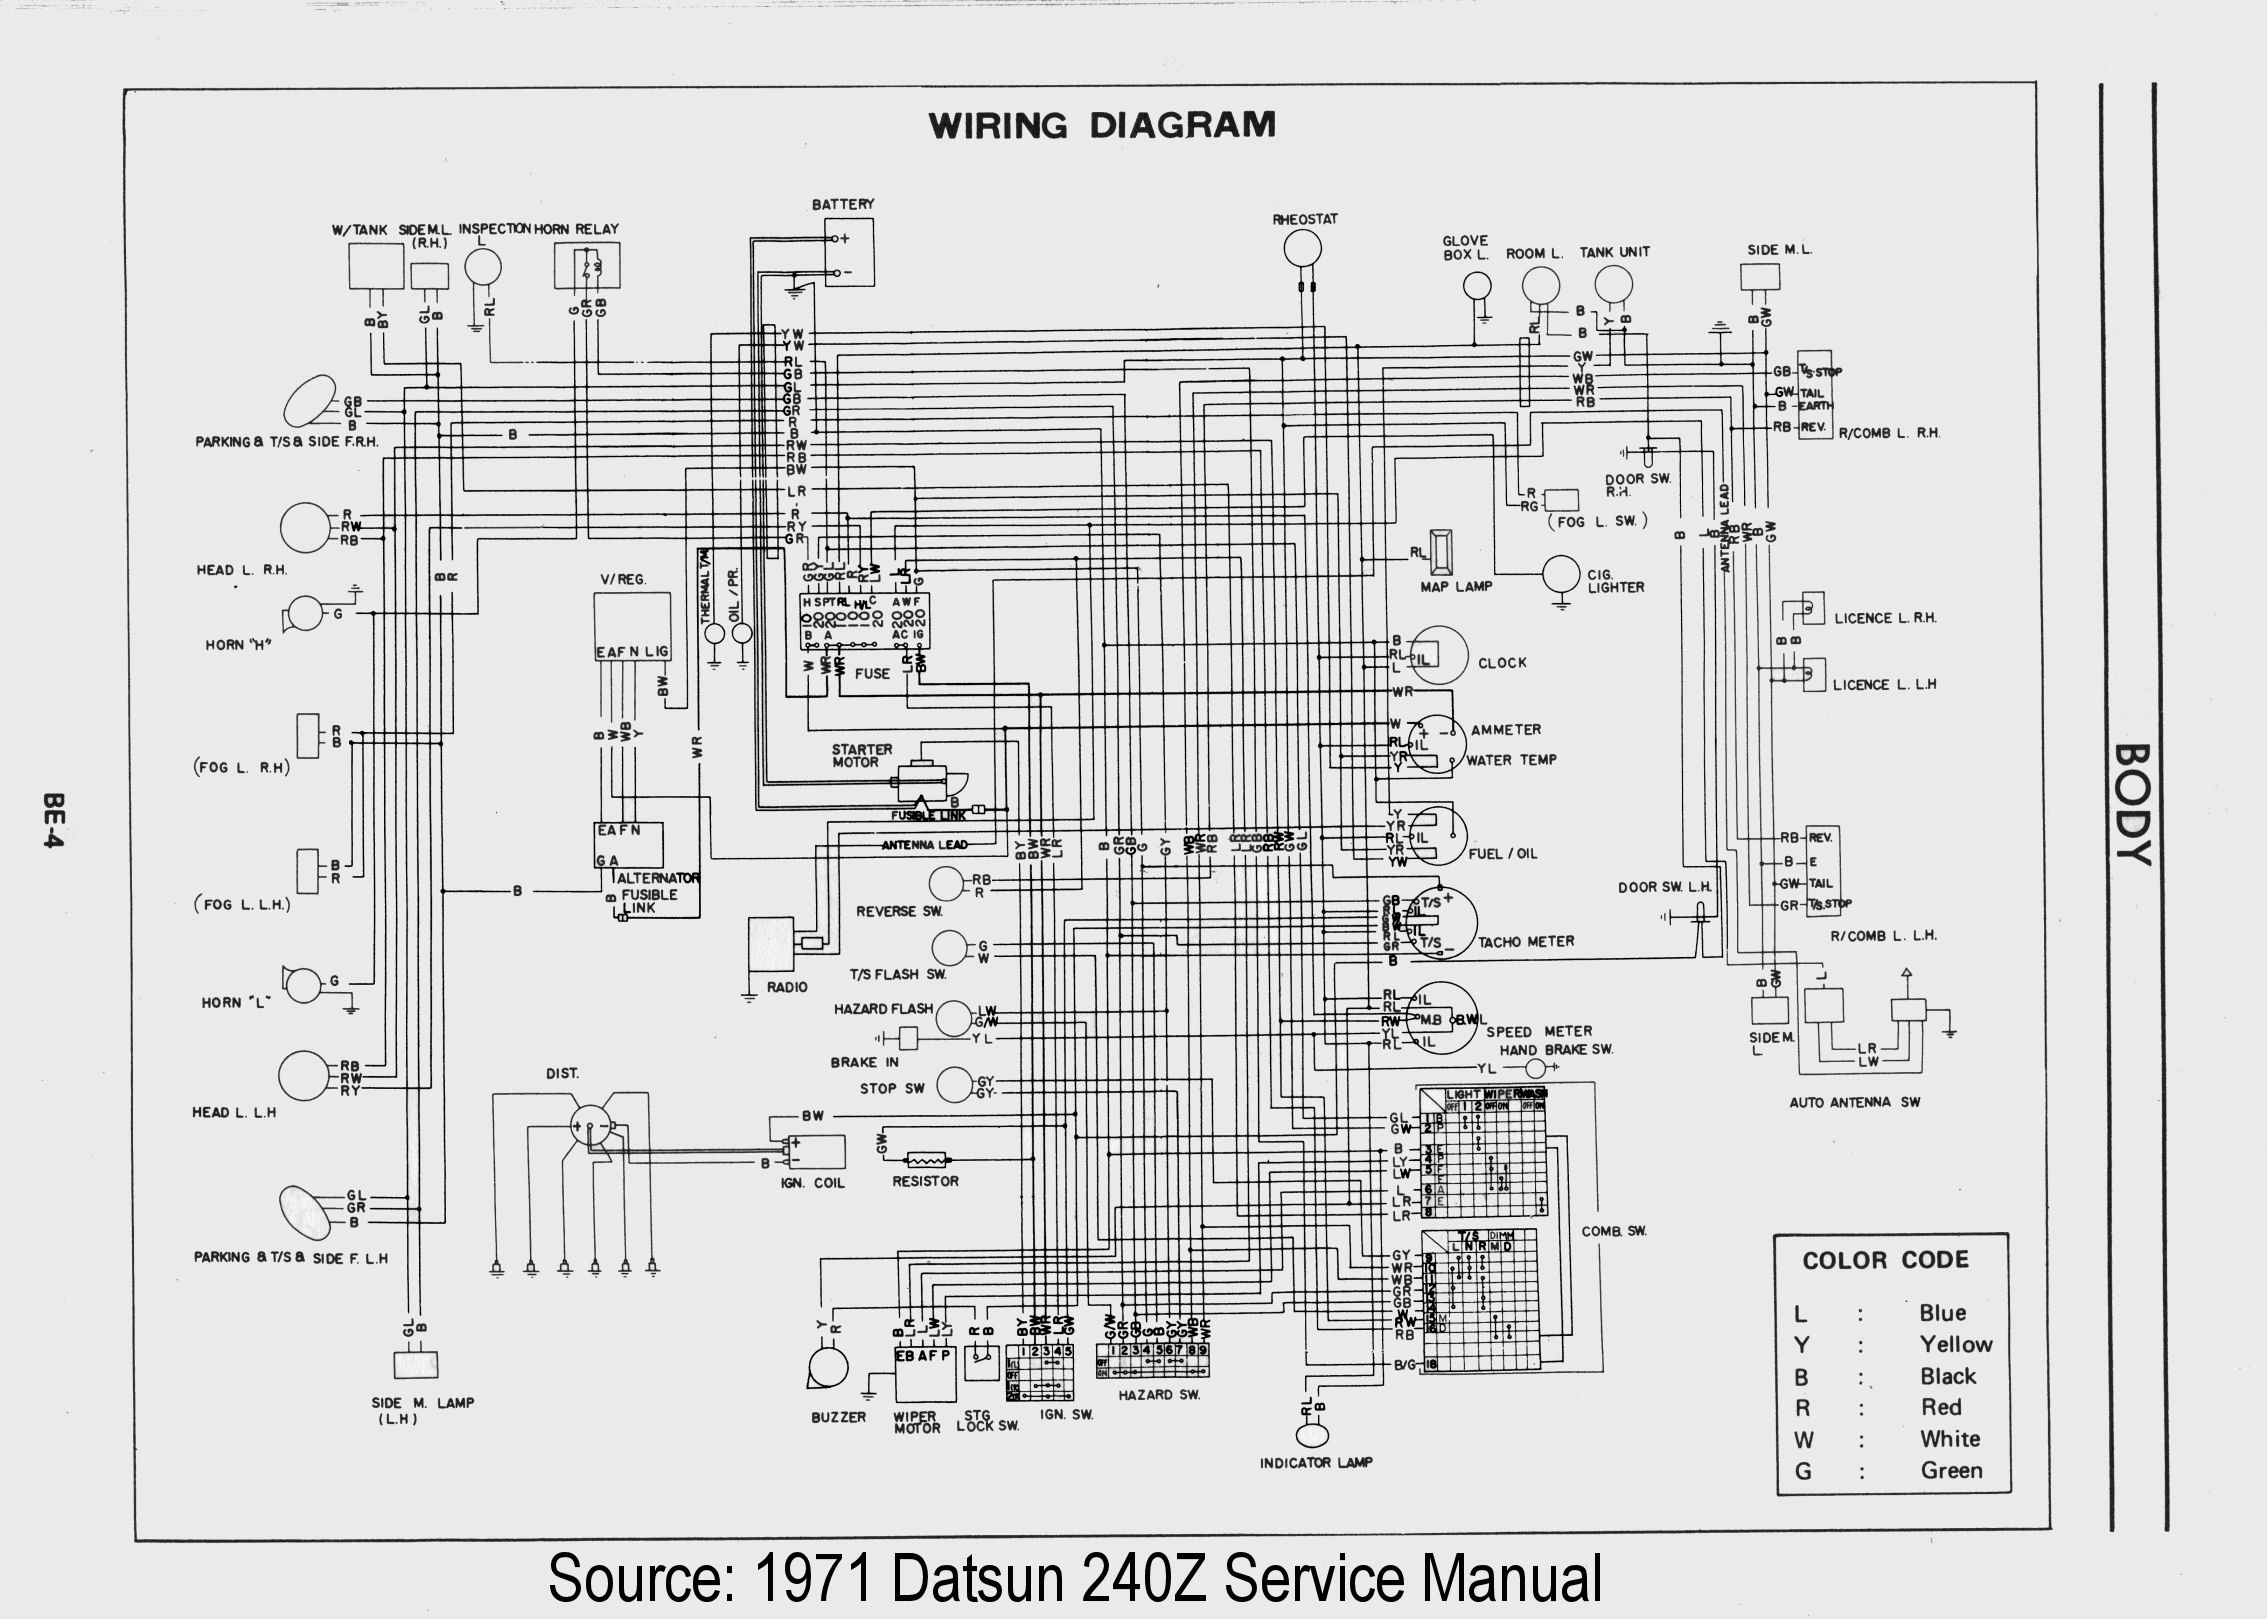 Wiring Diagram HiRes 2 280z wiring diagram 280z tachometer wiring \u2022 wiring diagrams j 1976 datsun 280z wiring diagram at gsmx.co